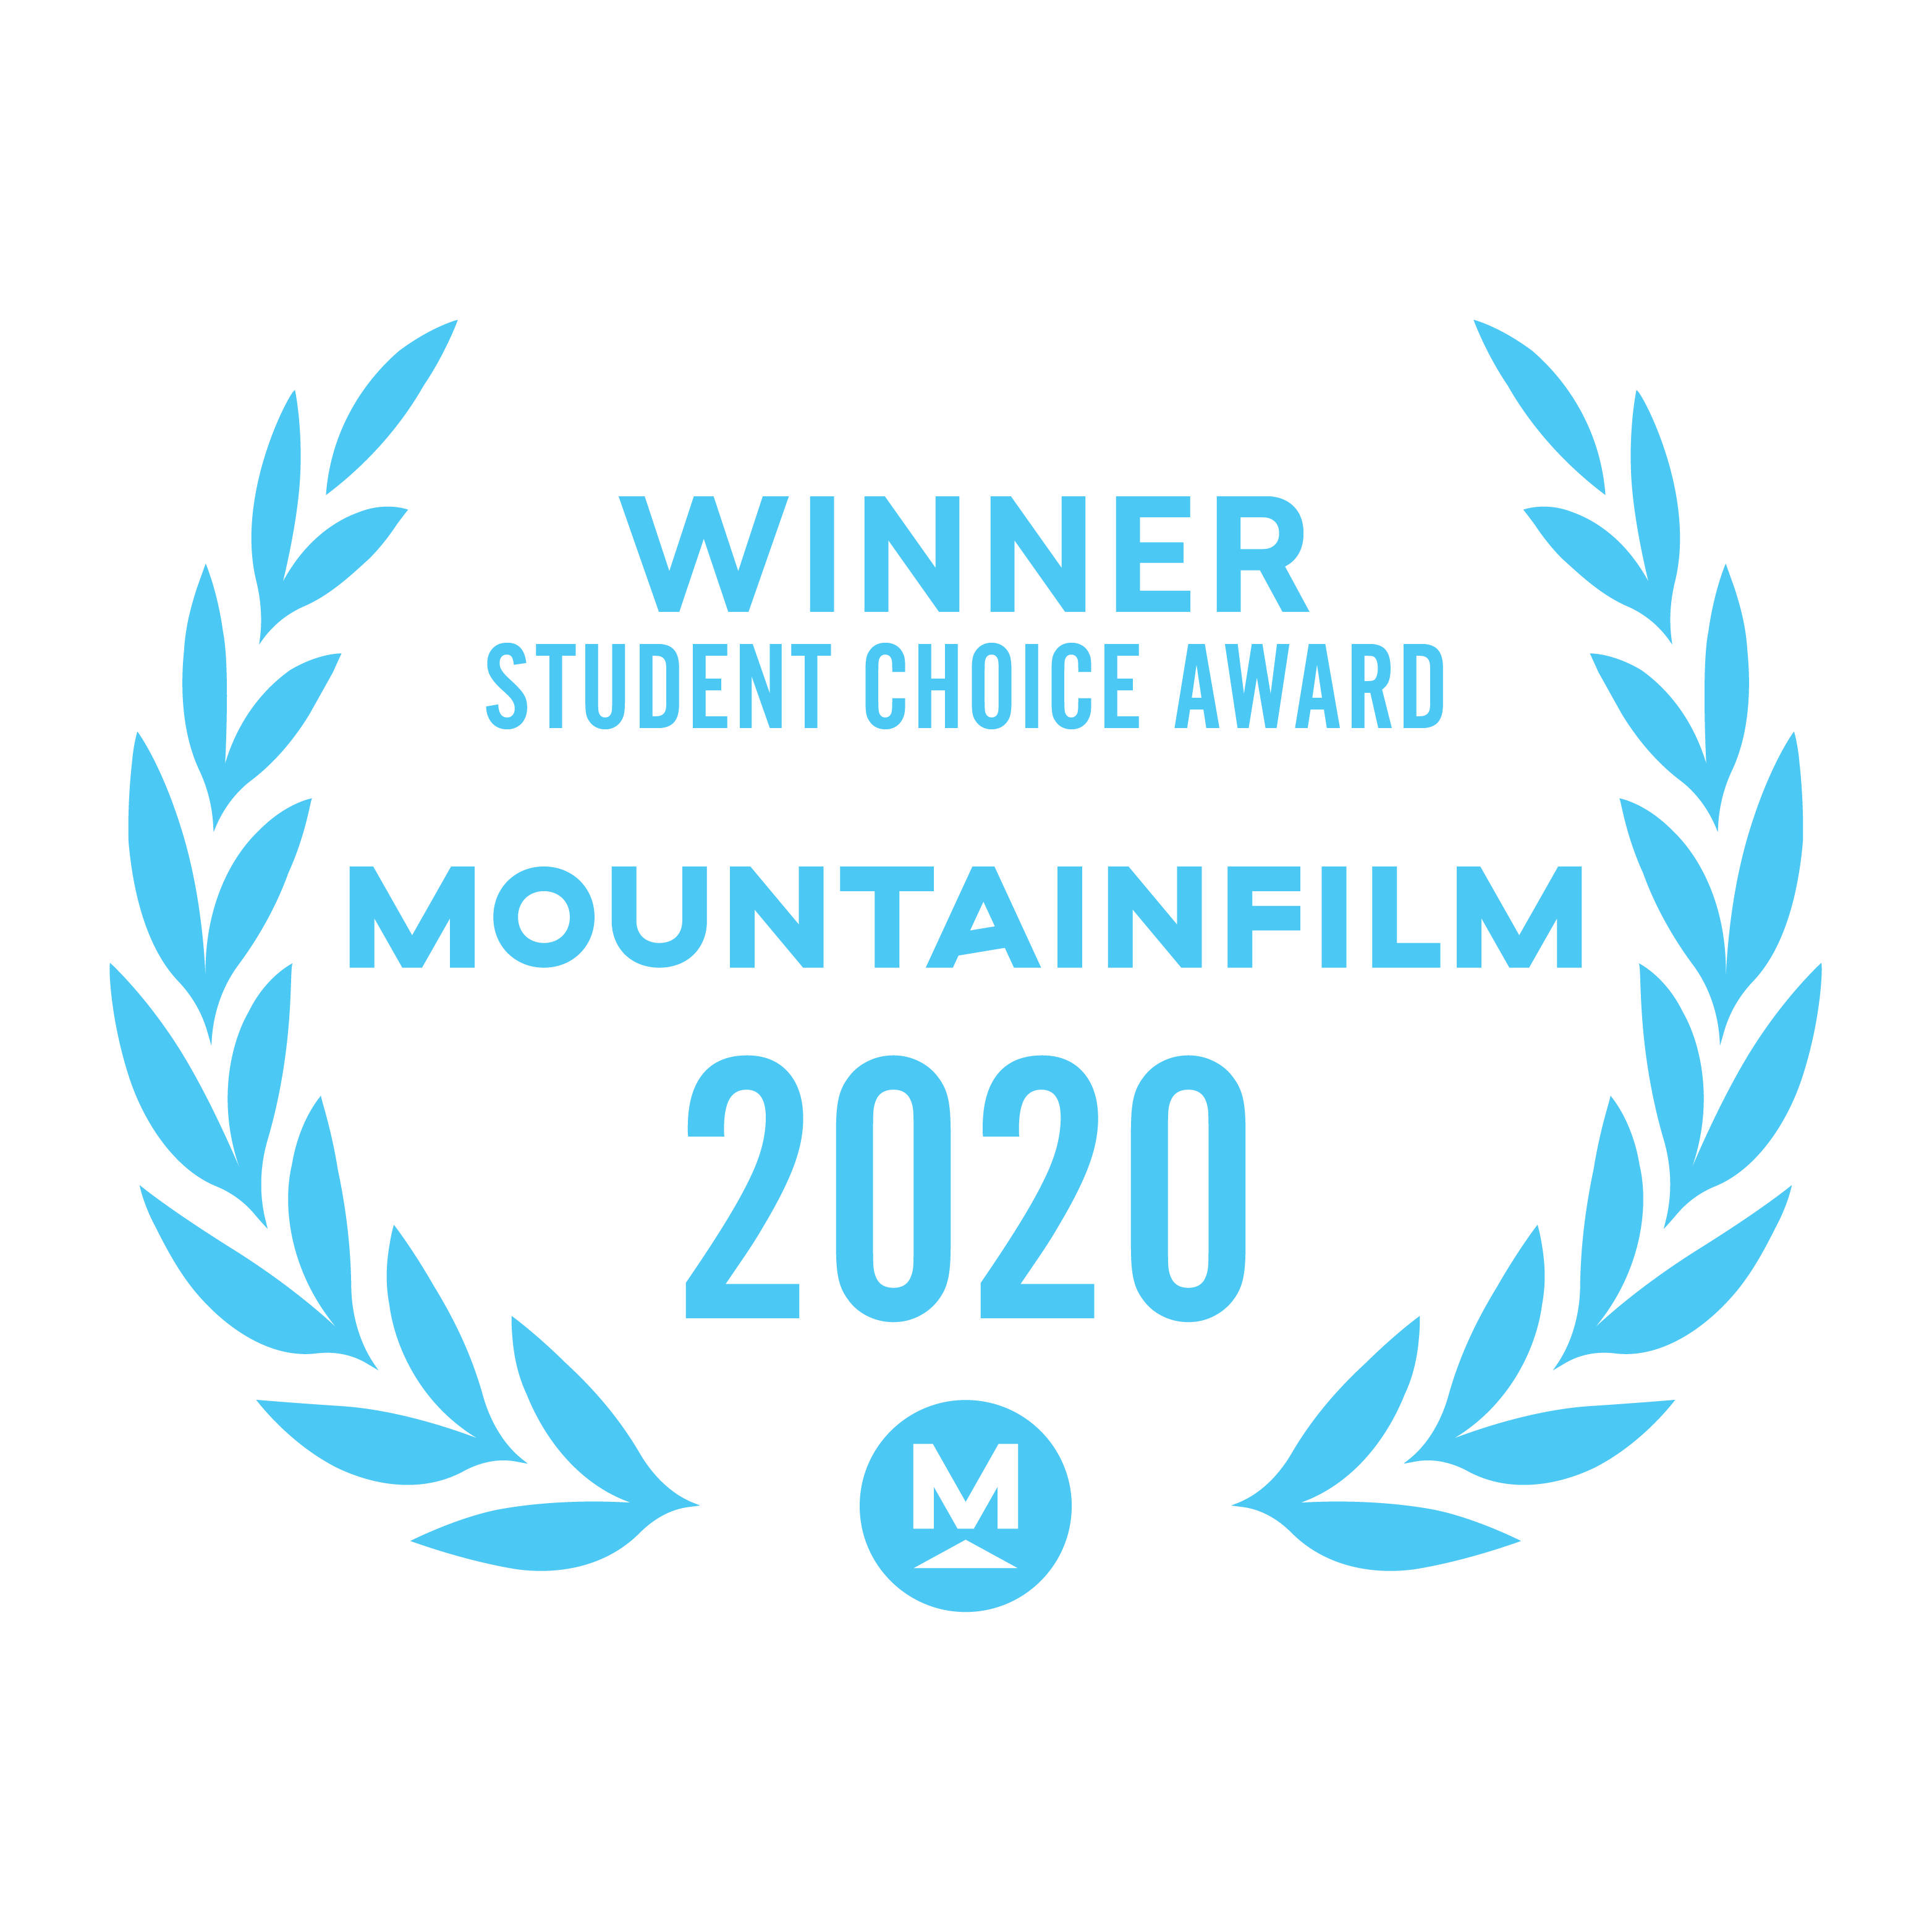 2020 Student Choice Award